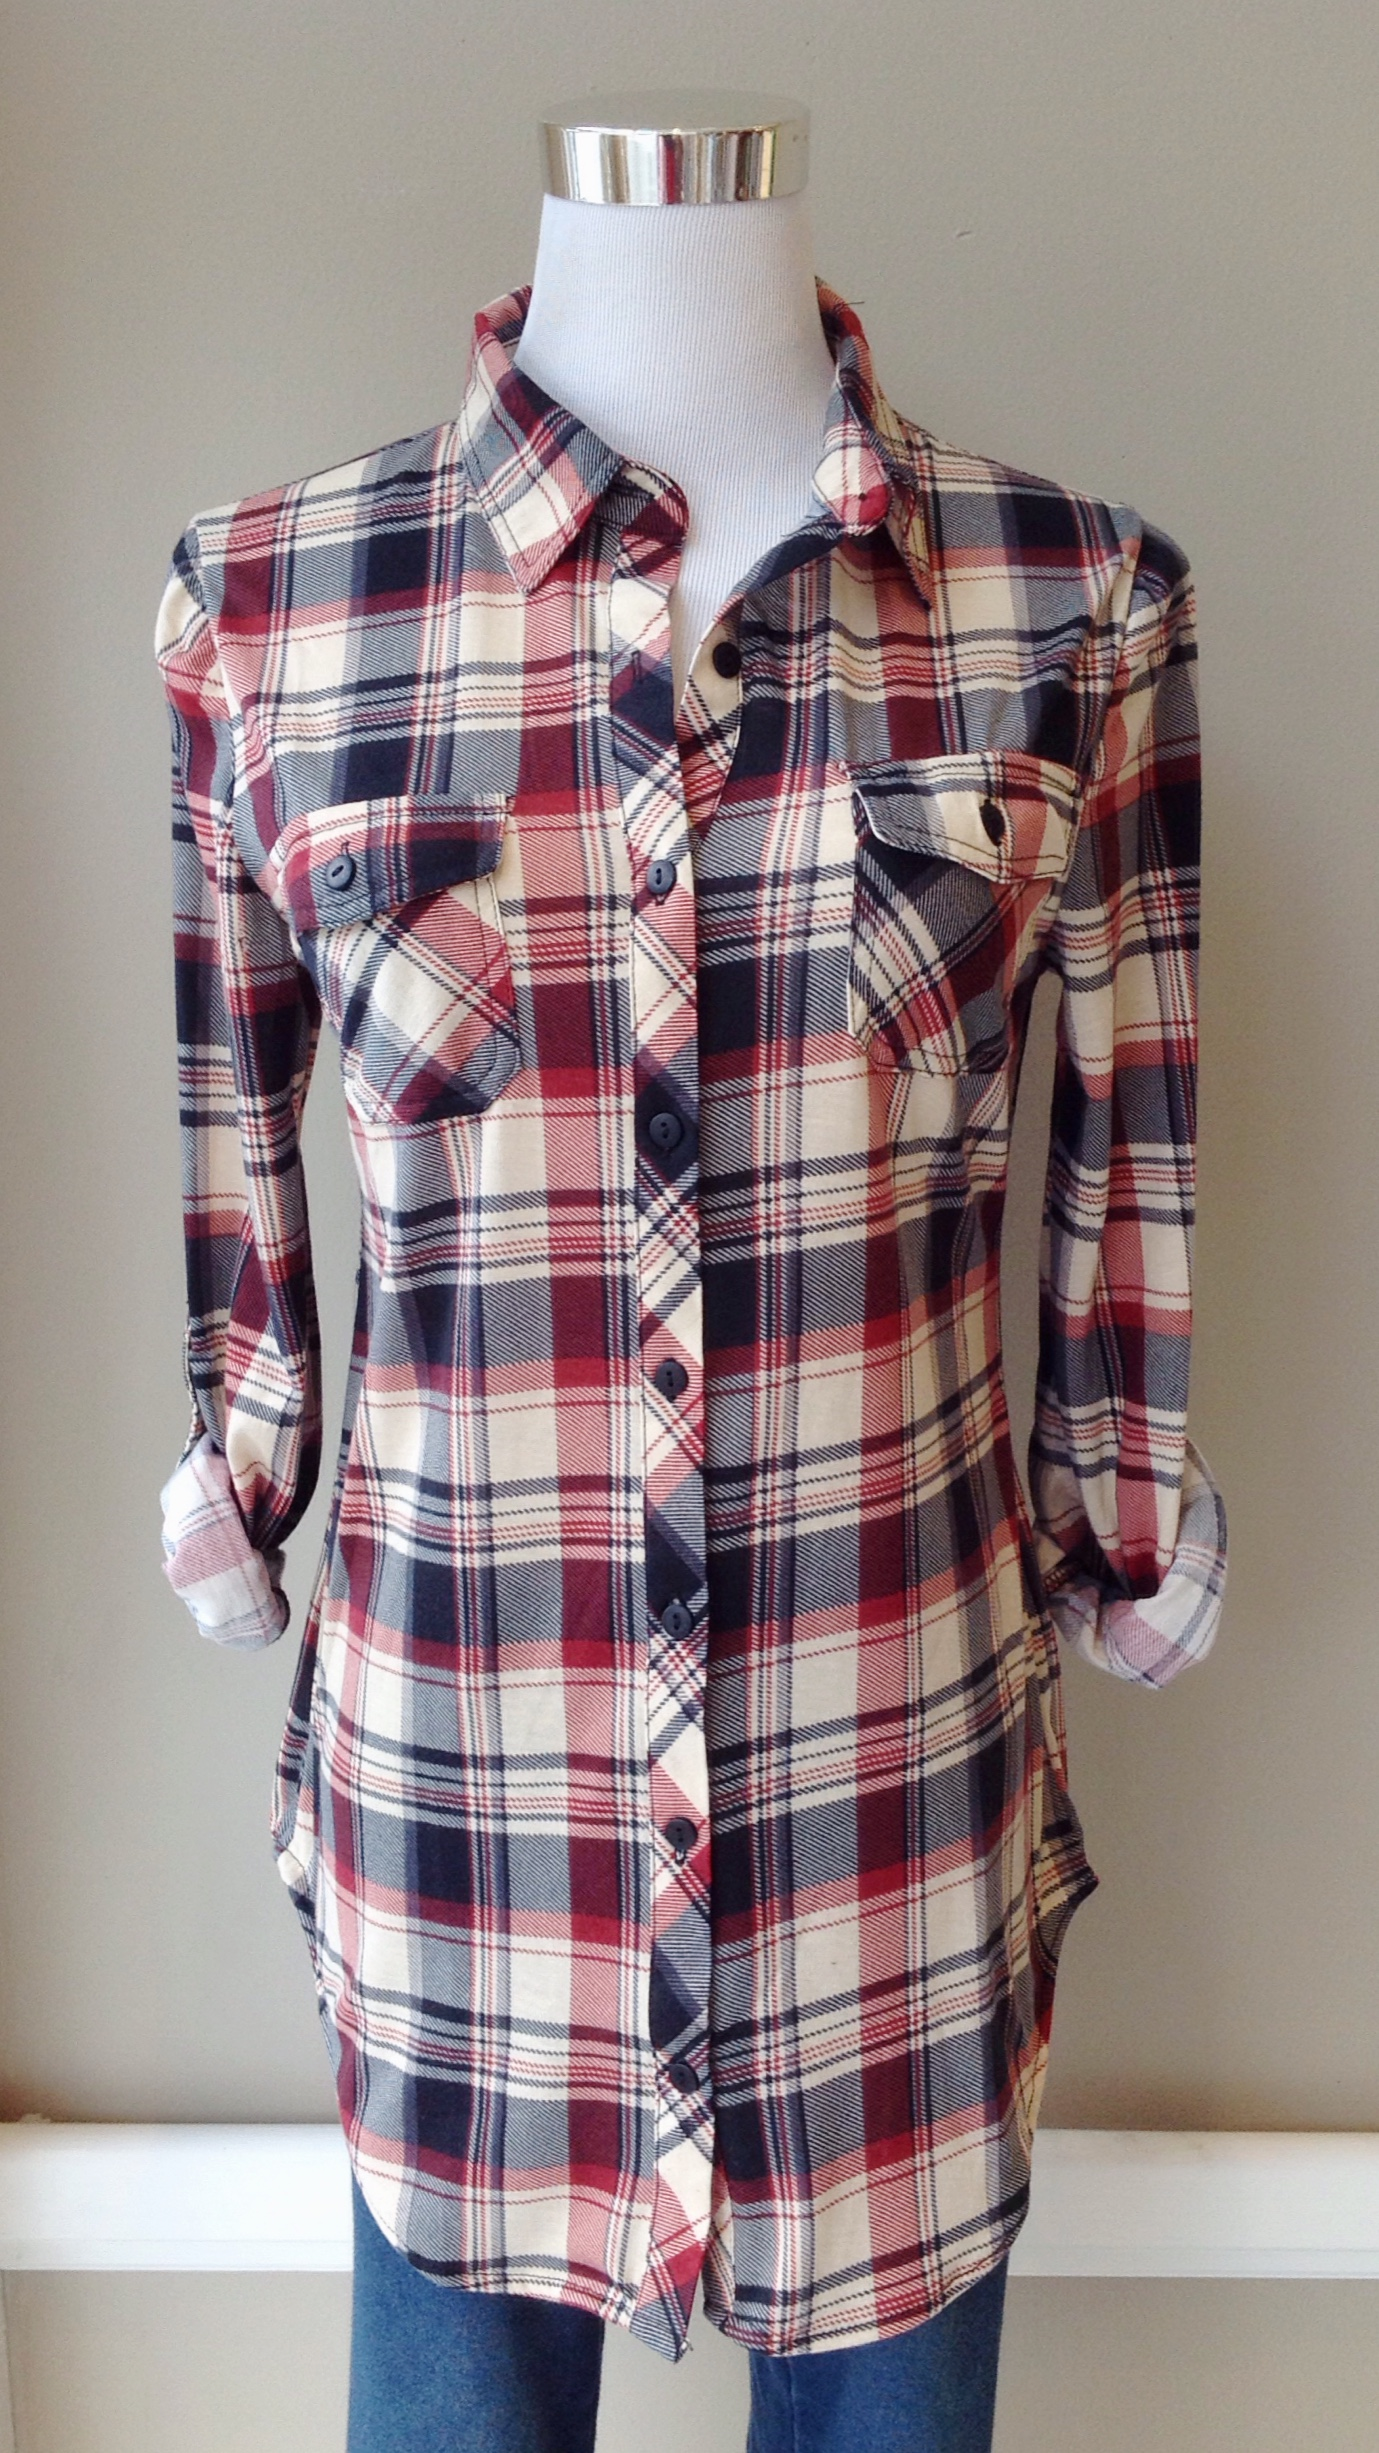 Button-down plaid top with roll tab sleeves in red/navy/taupe, $32